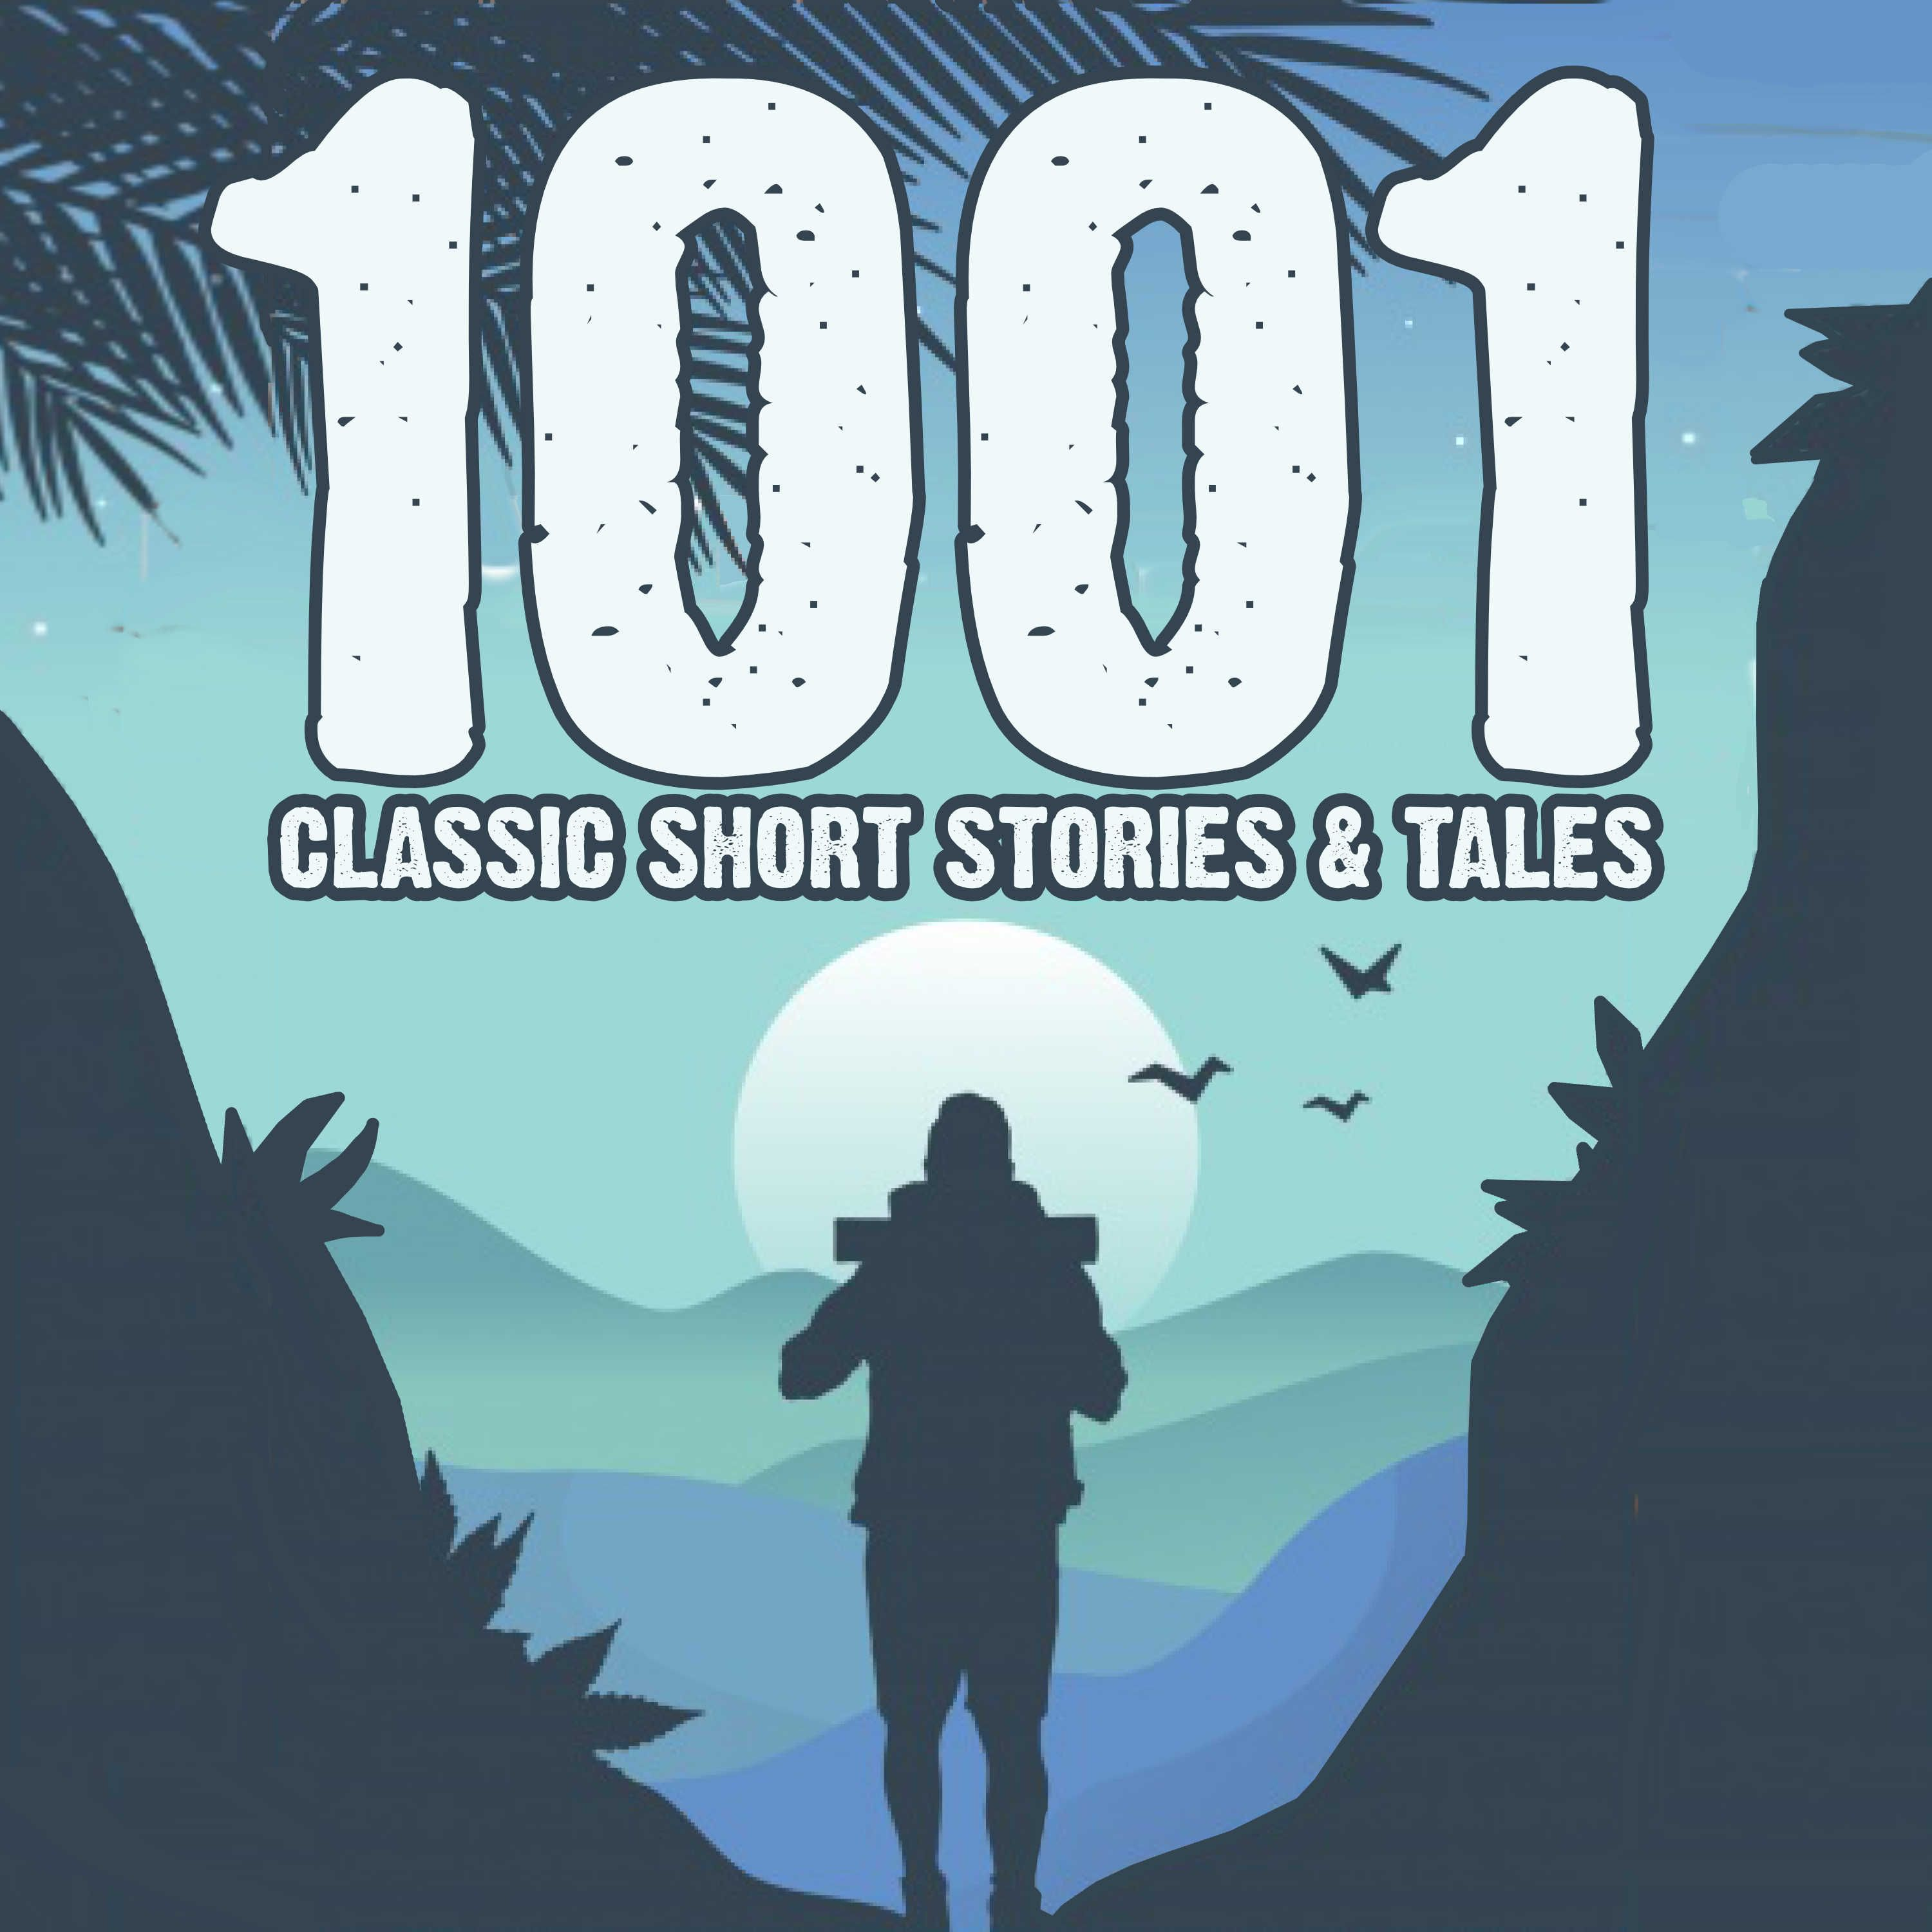 """1001 Classic Short Stories & Tales"" Podcast"